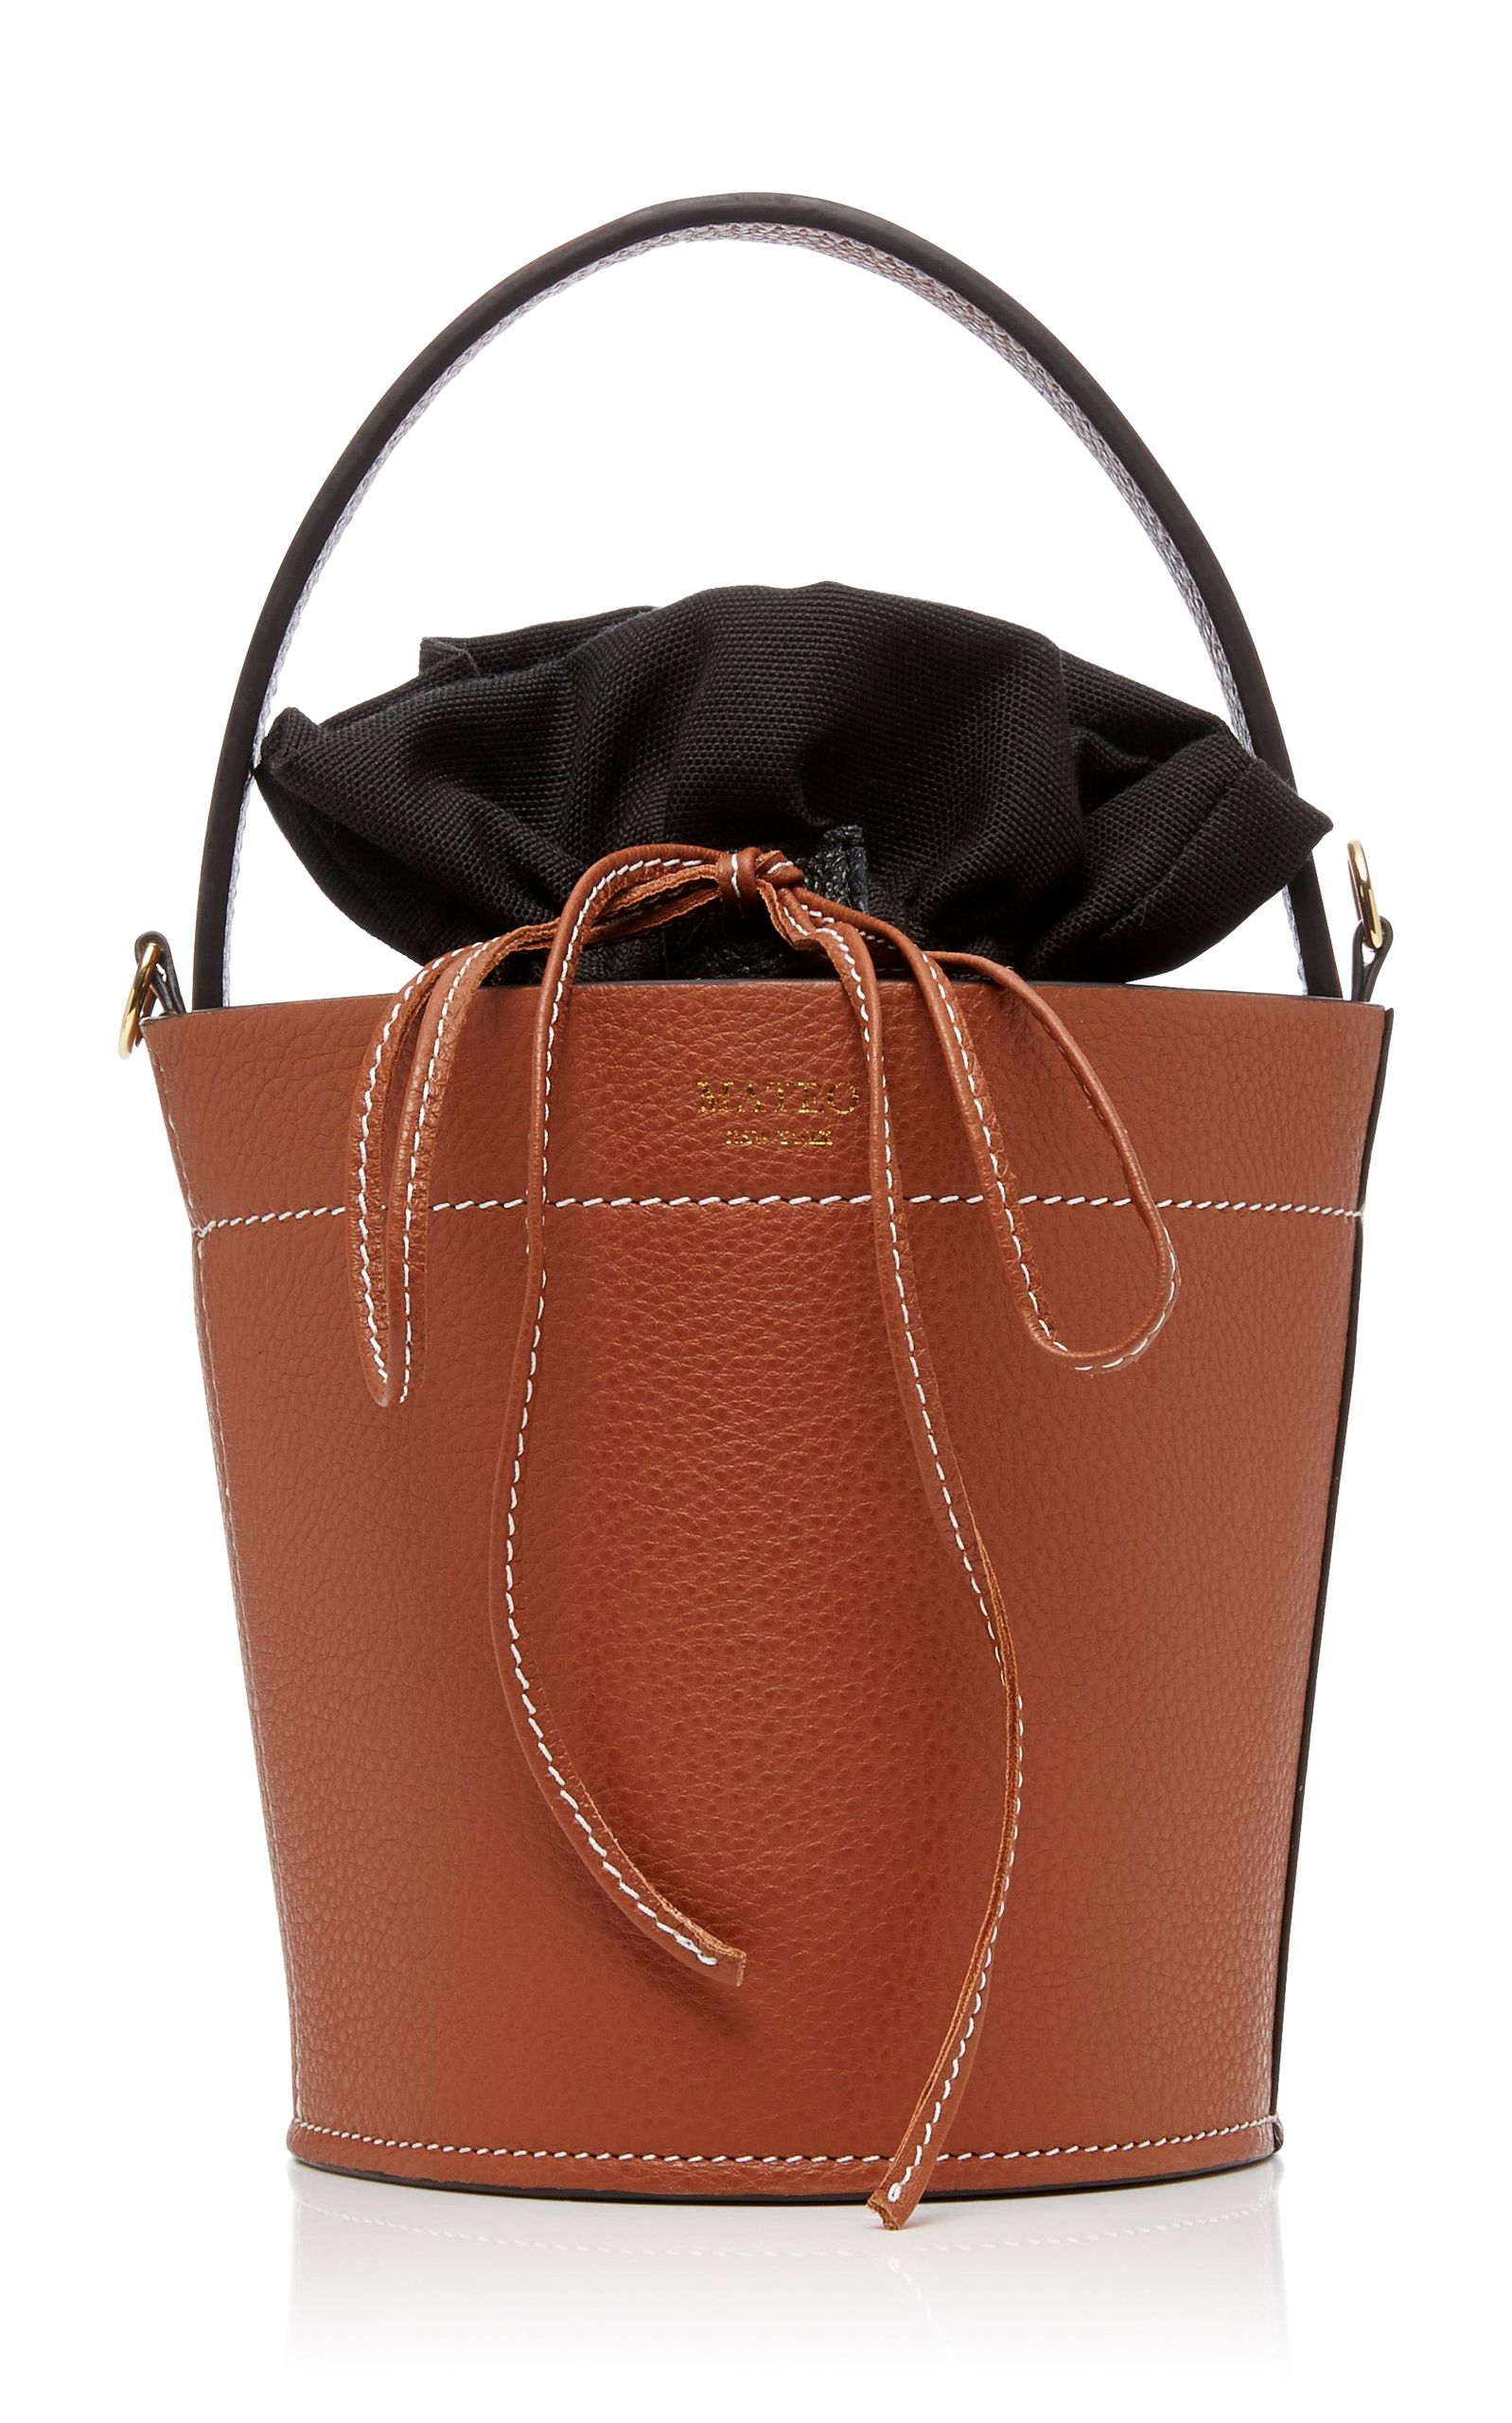 60db7109fd1a MATEO THE MADELINE BUCKET BAG IN COGNAC.  mateo  bags  bucket ...